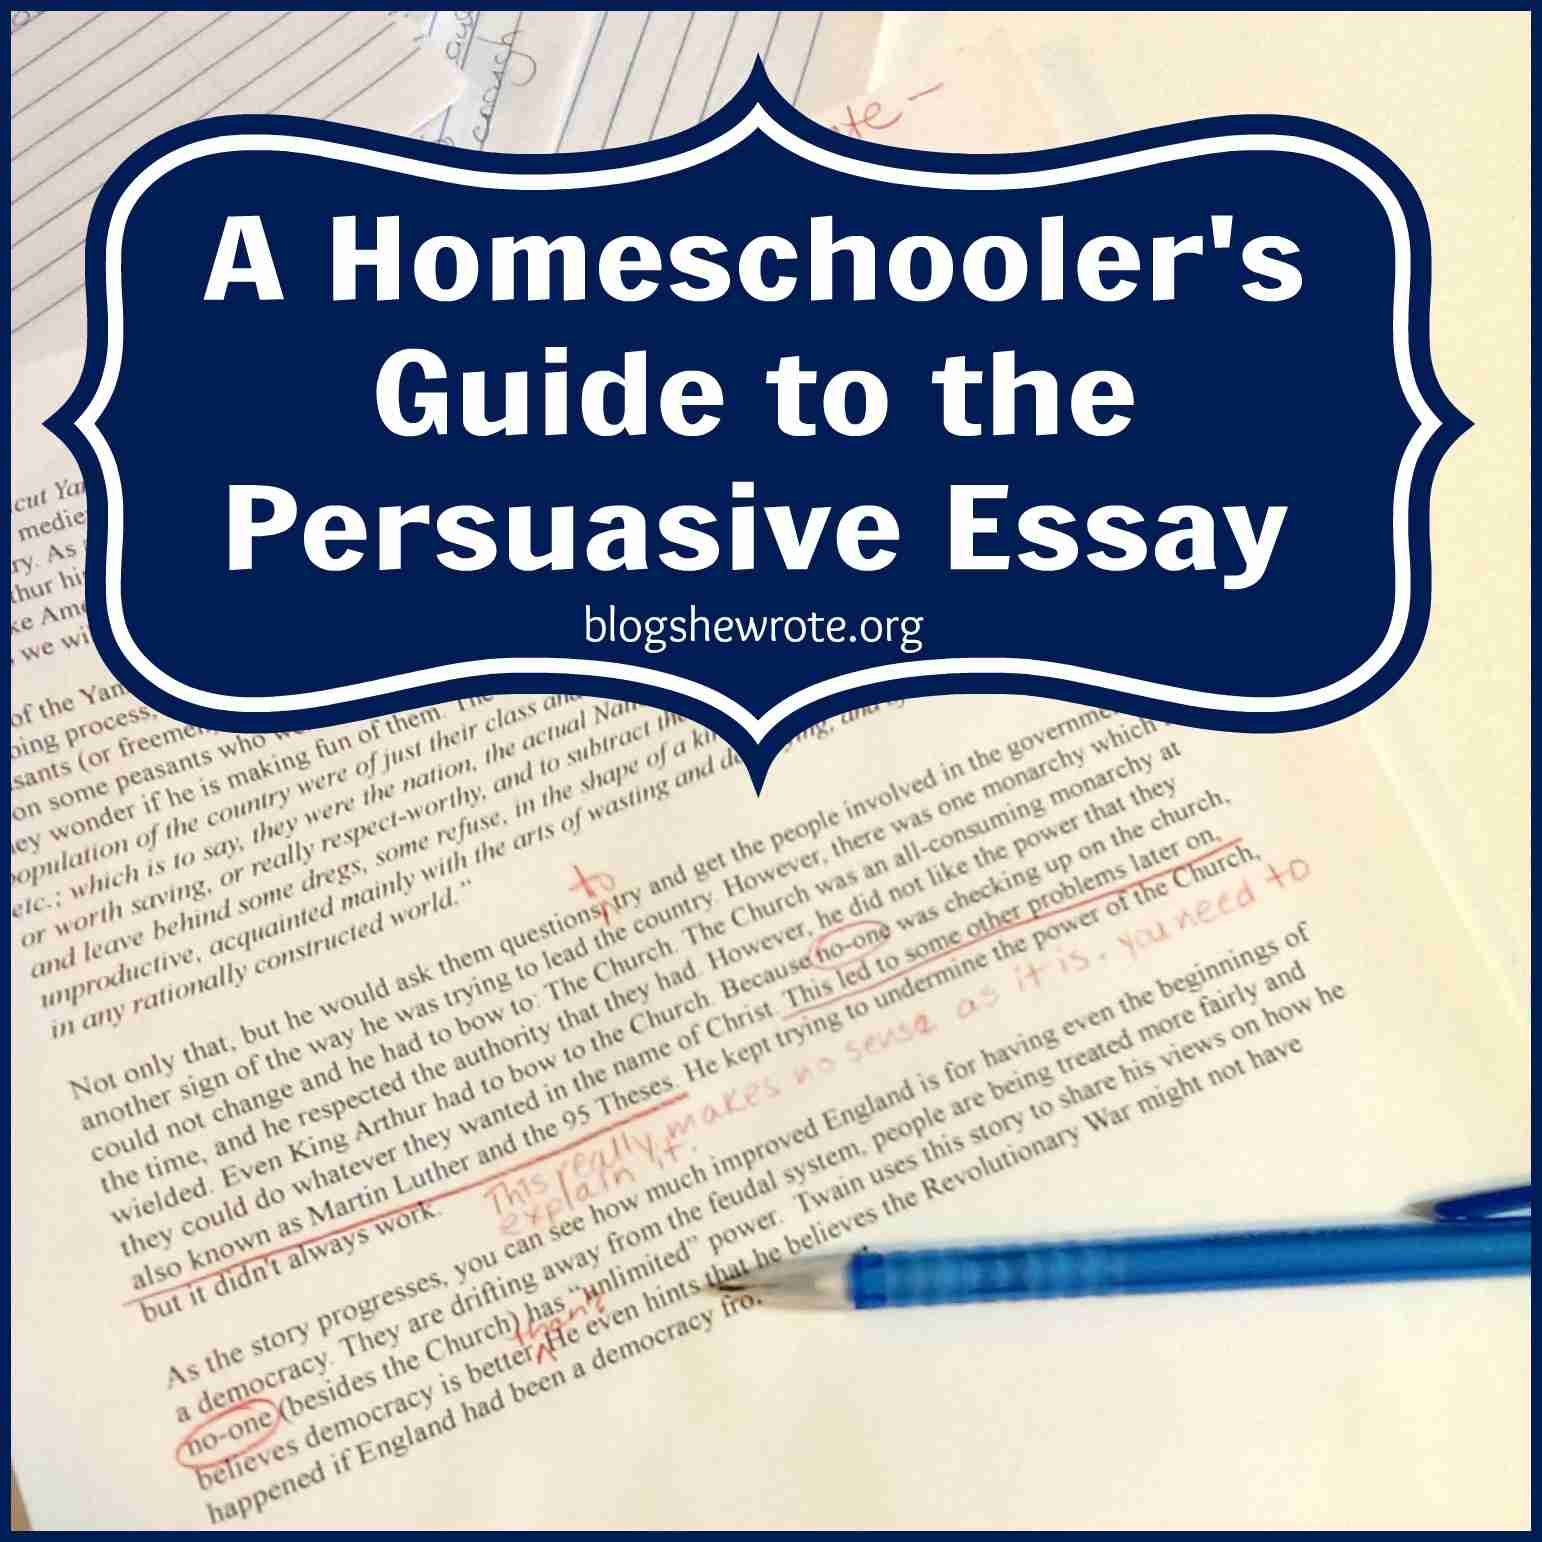 a homeschoolers guide to the persuasive essay  blog she wrote blog she wrote a homeschoolers guide to the persuasive essay